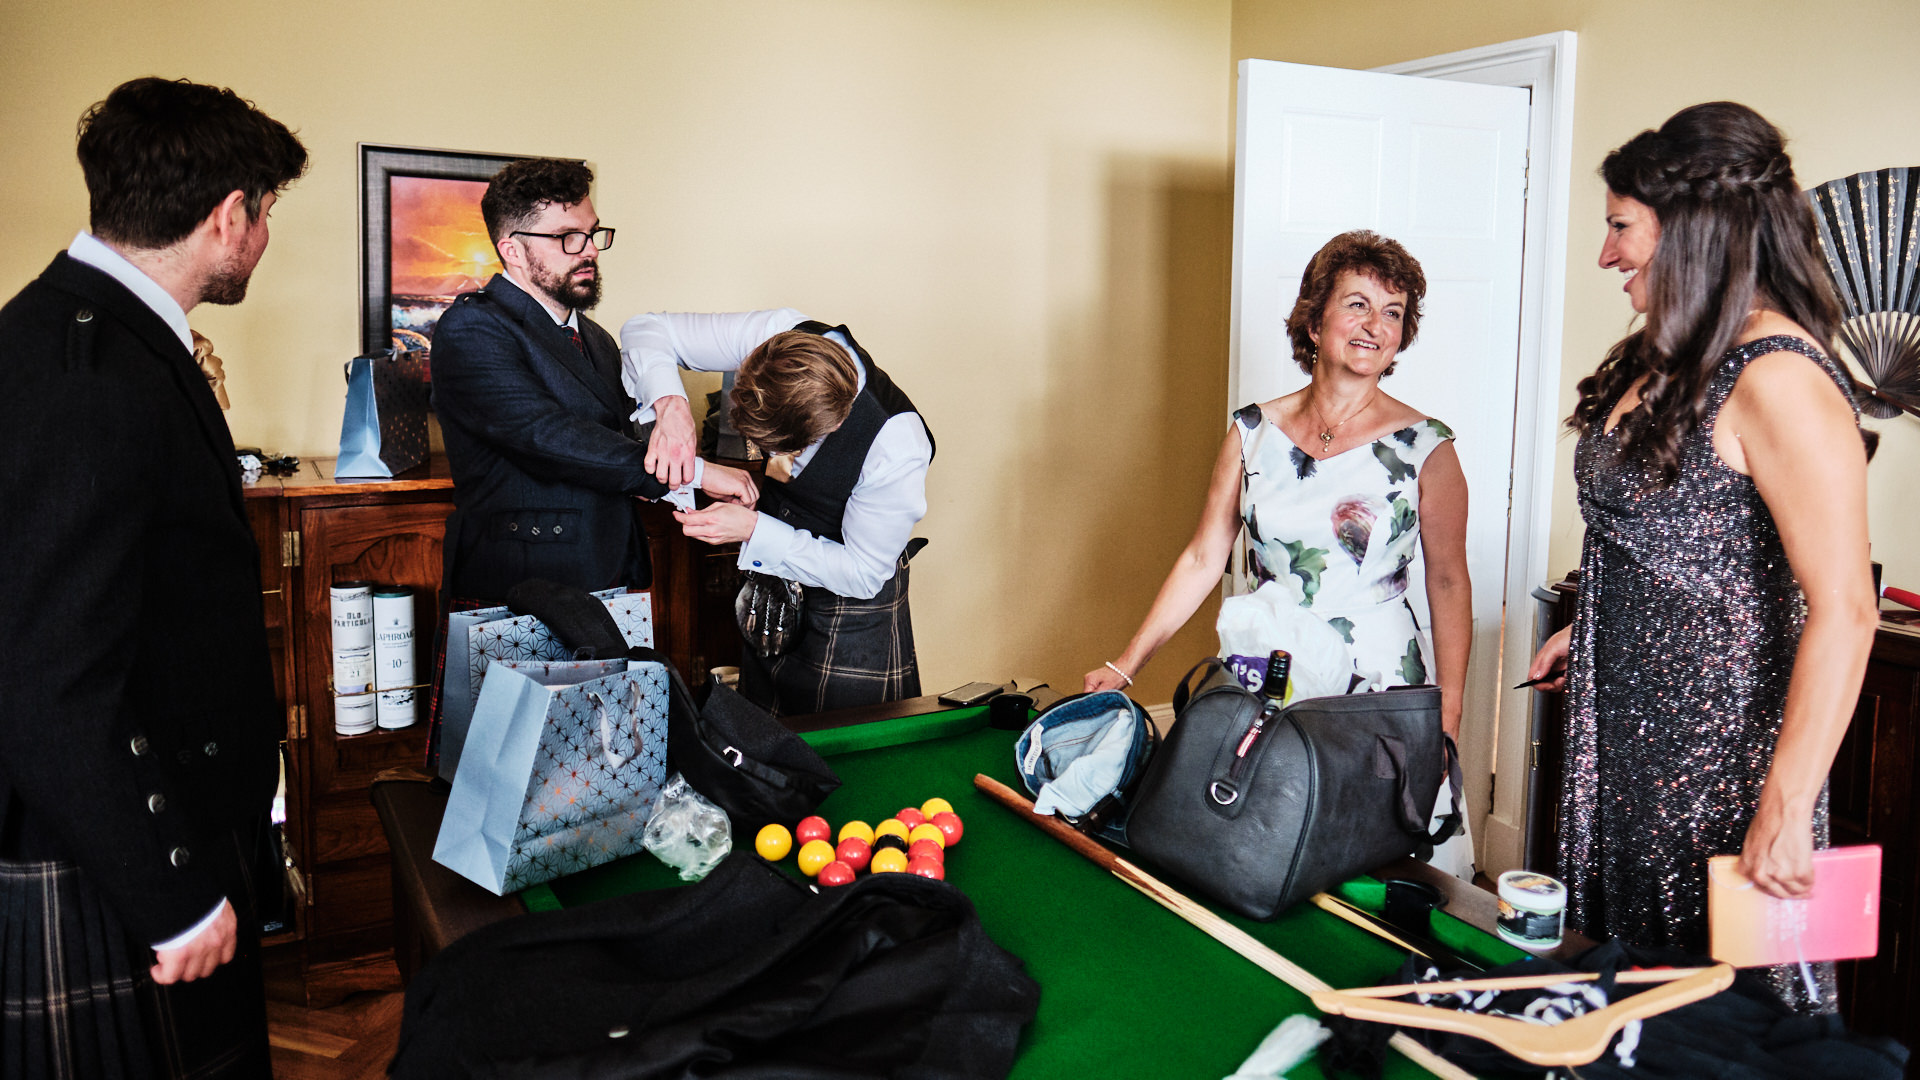 a colour photograph of the bridegroom and his family getting ready for the wedding